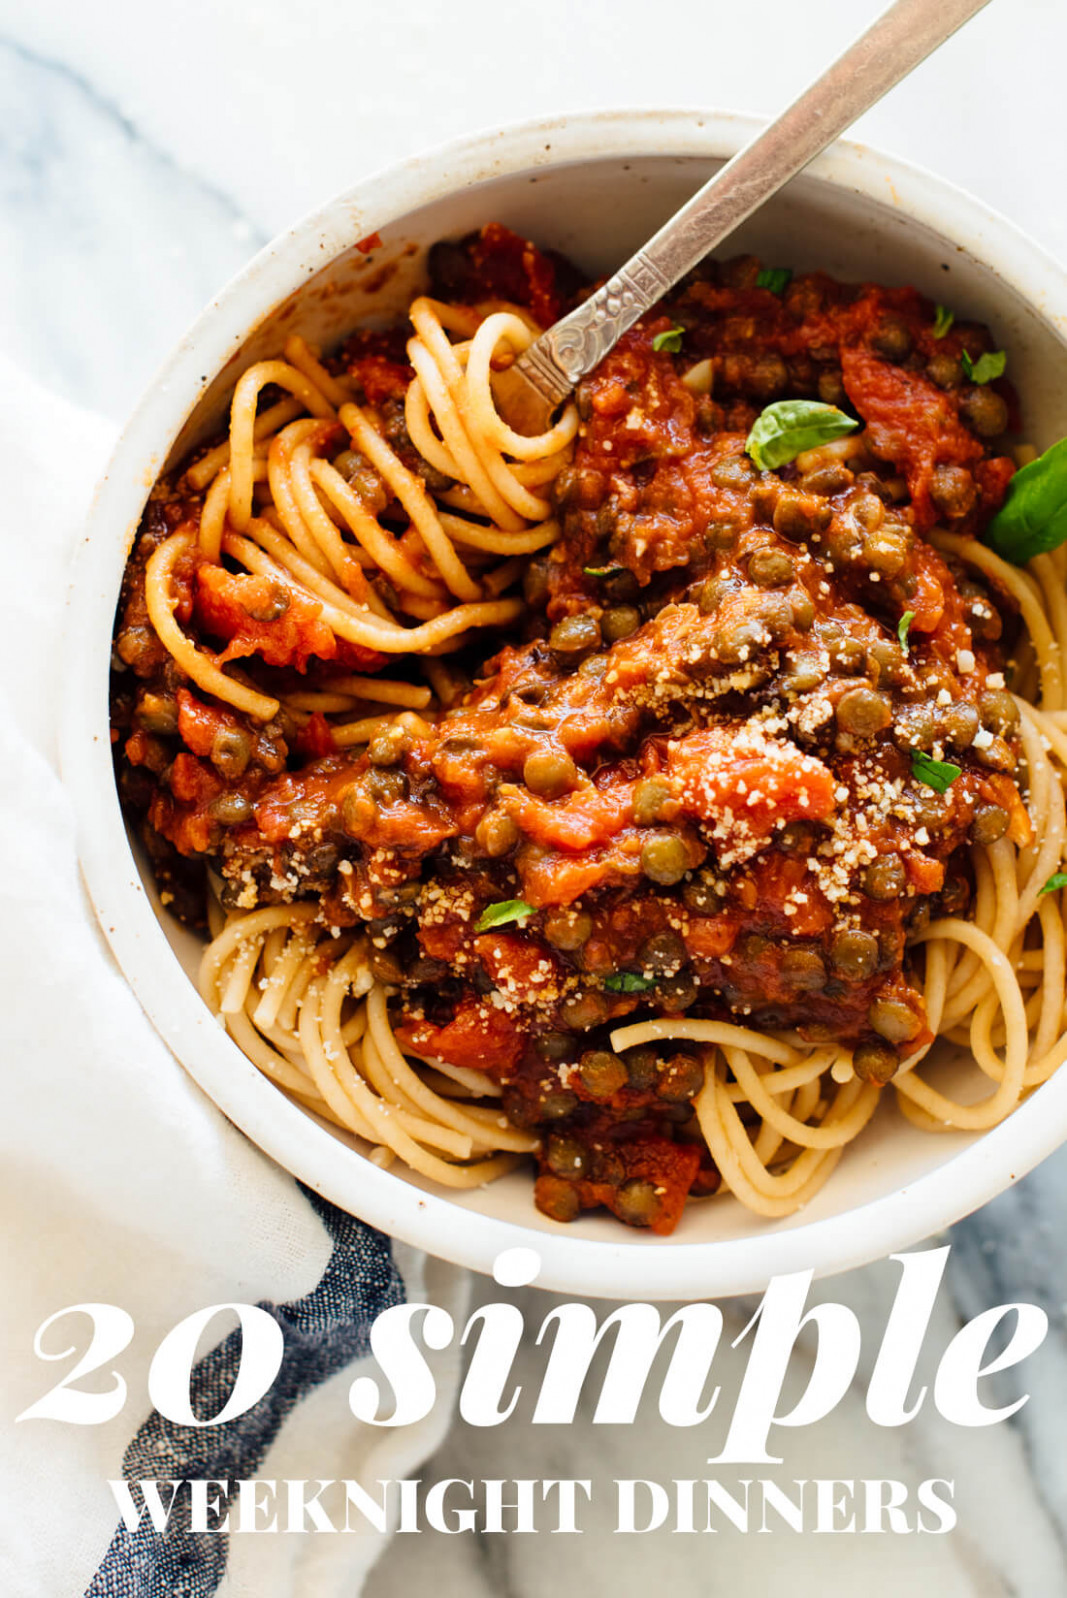 8 Simple Vegetarian Dinner Recipes - Cookie and Kate